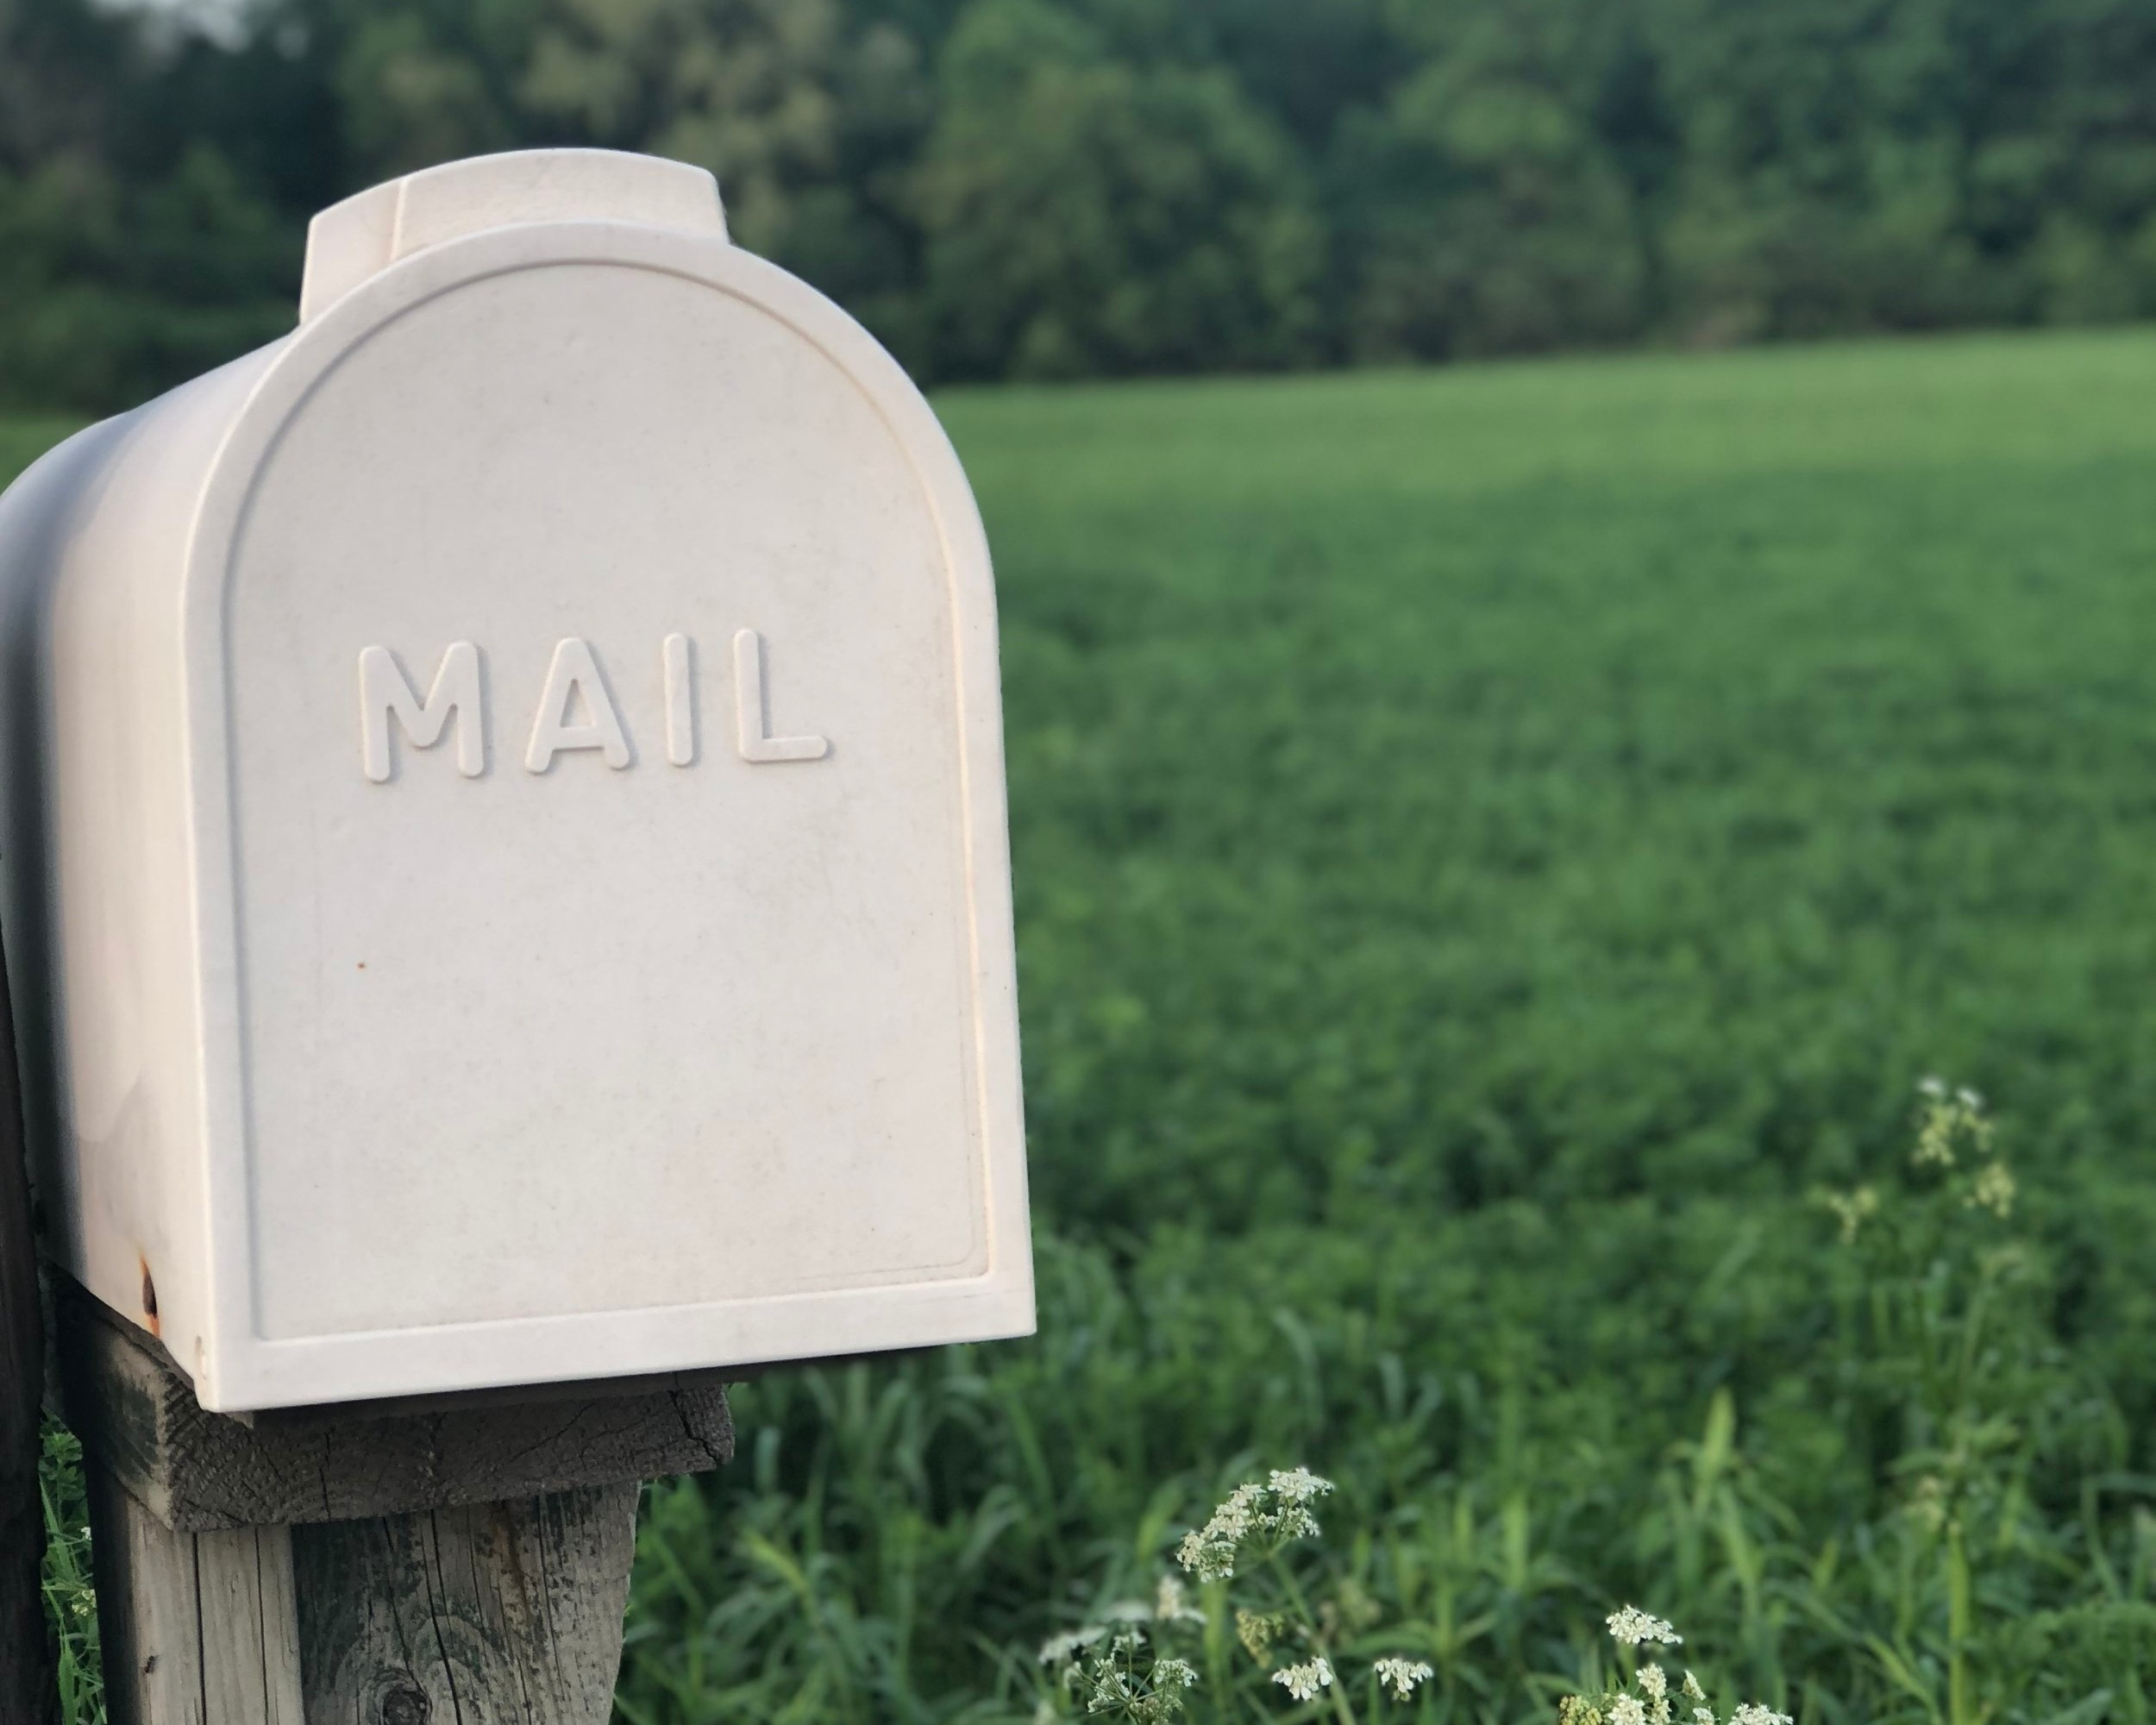 emails - How to stay organized and stay on top of it all.